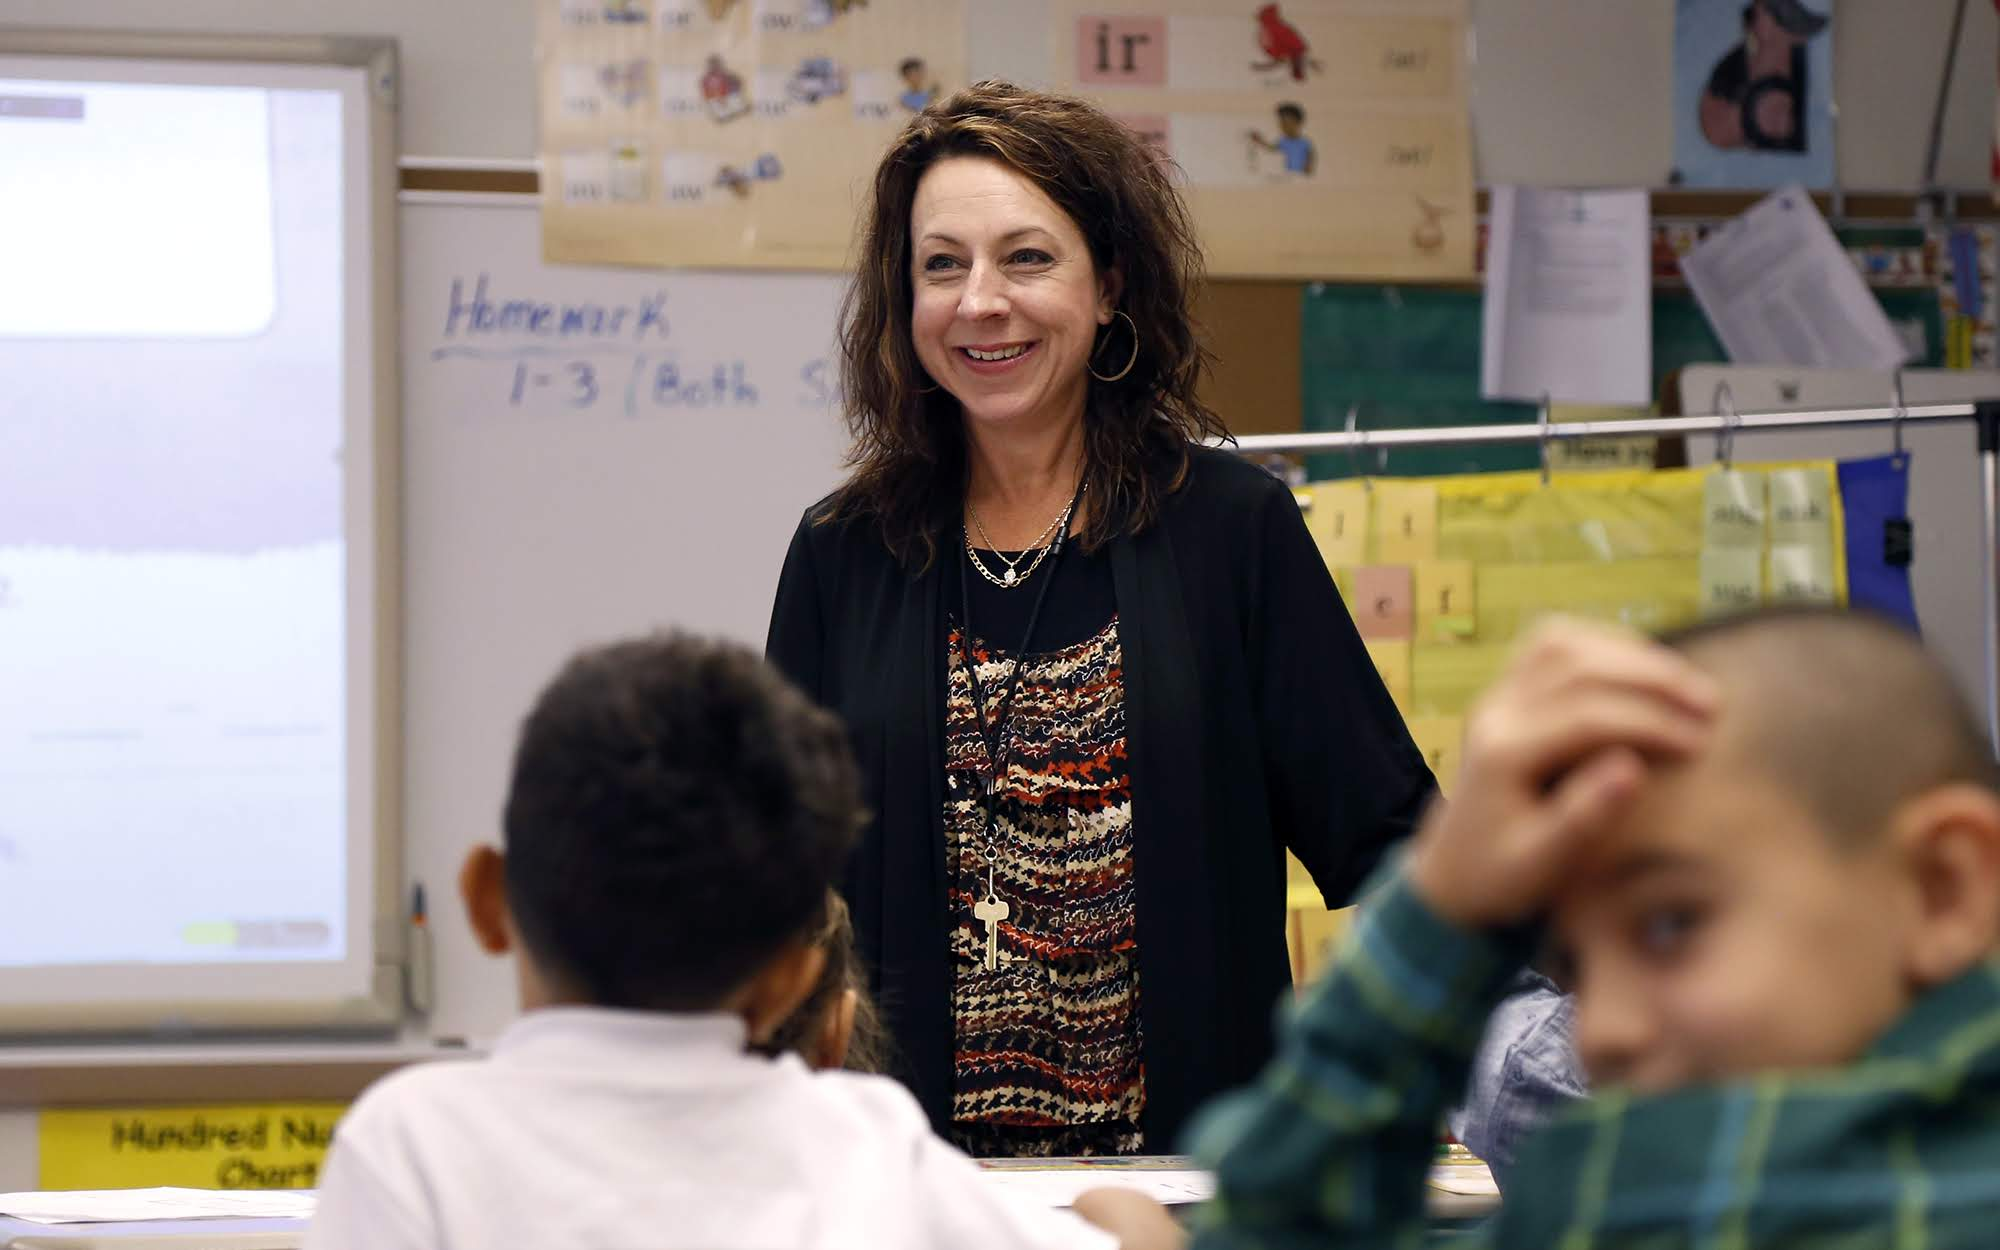 Yvonne Tutera, a second-grade teacher at Francis McClure Elementary in the the McKeesport Area School District, teaches math class on Aug. 29. (Photo by Ryan Loew/PublicSource)